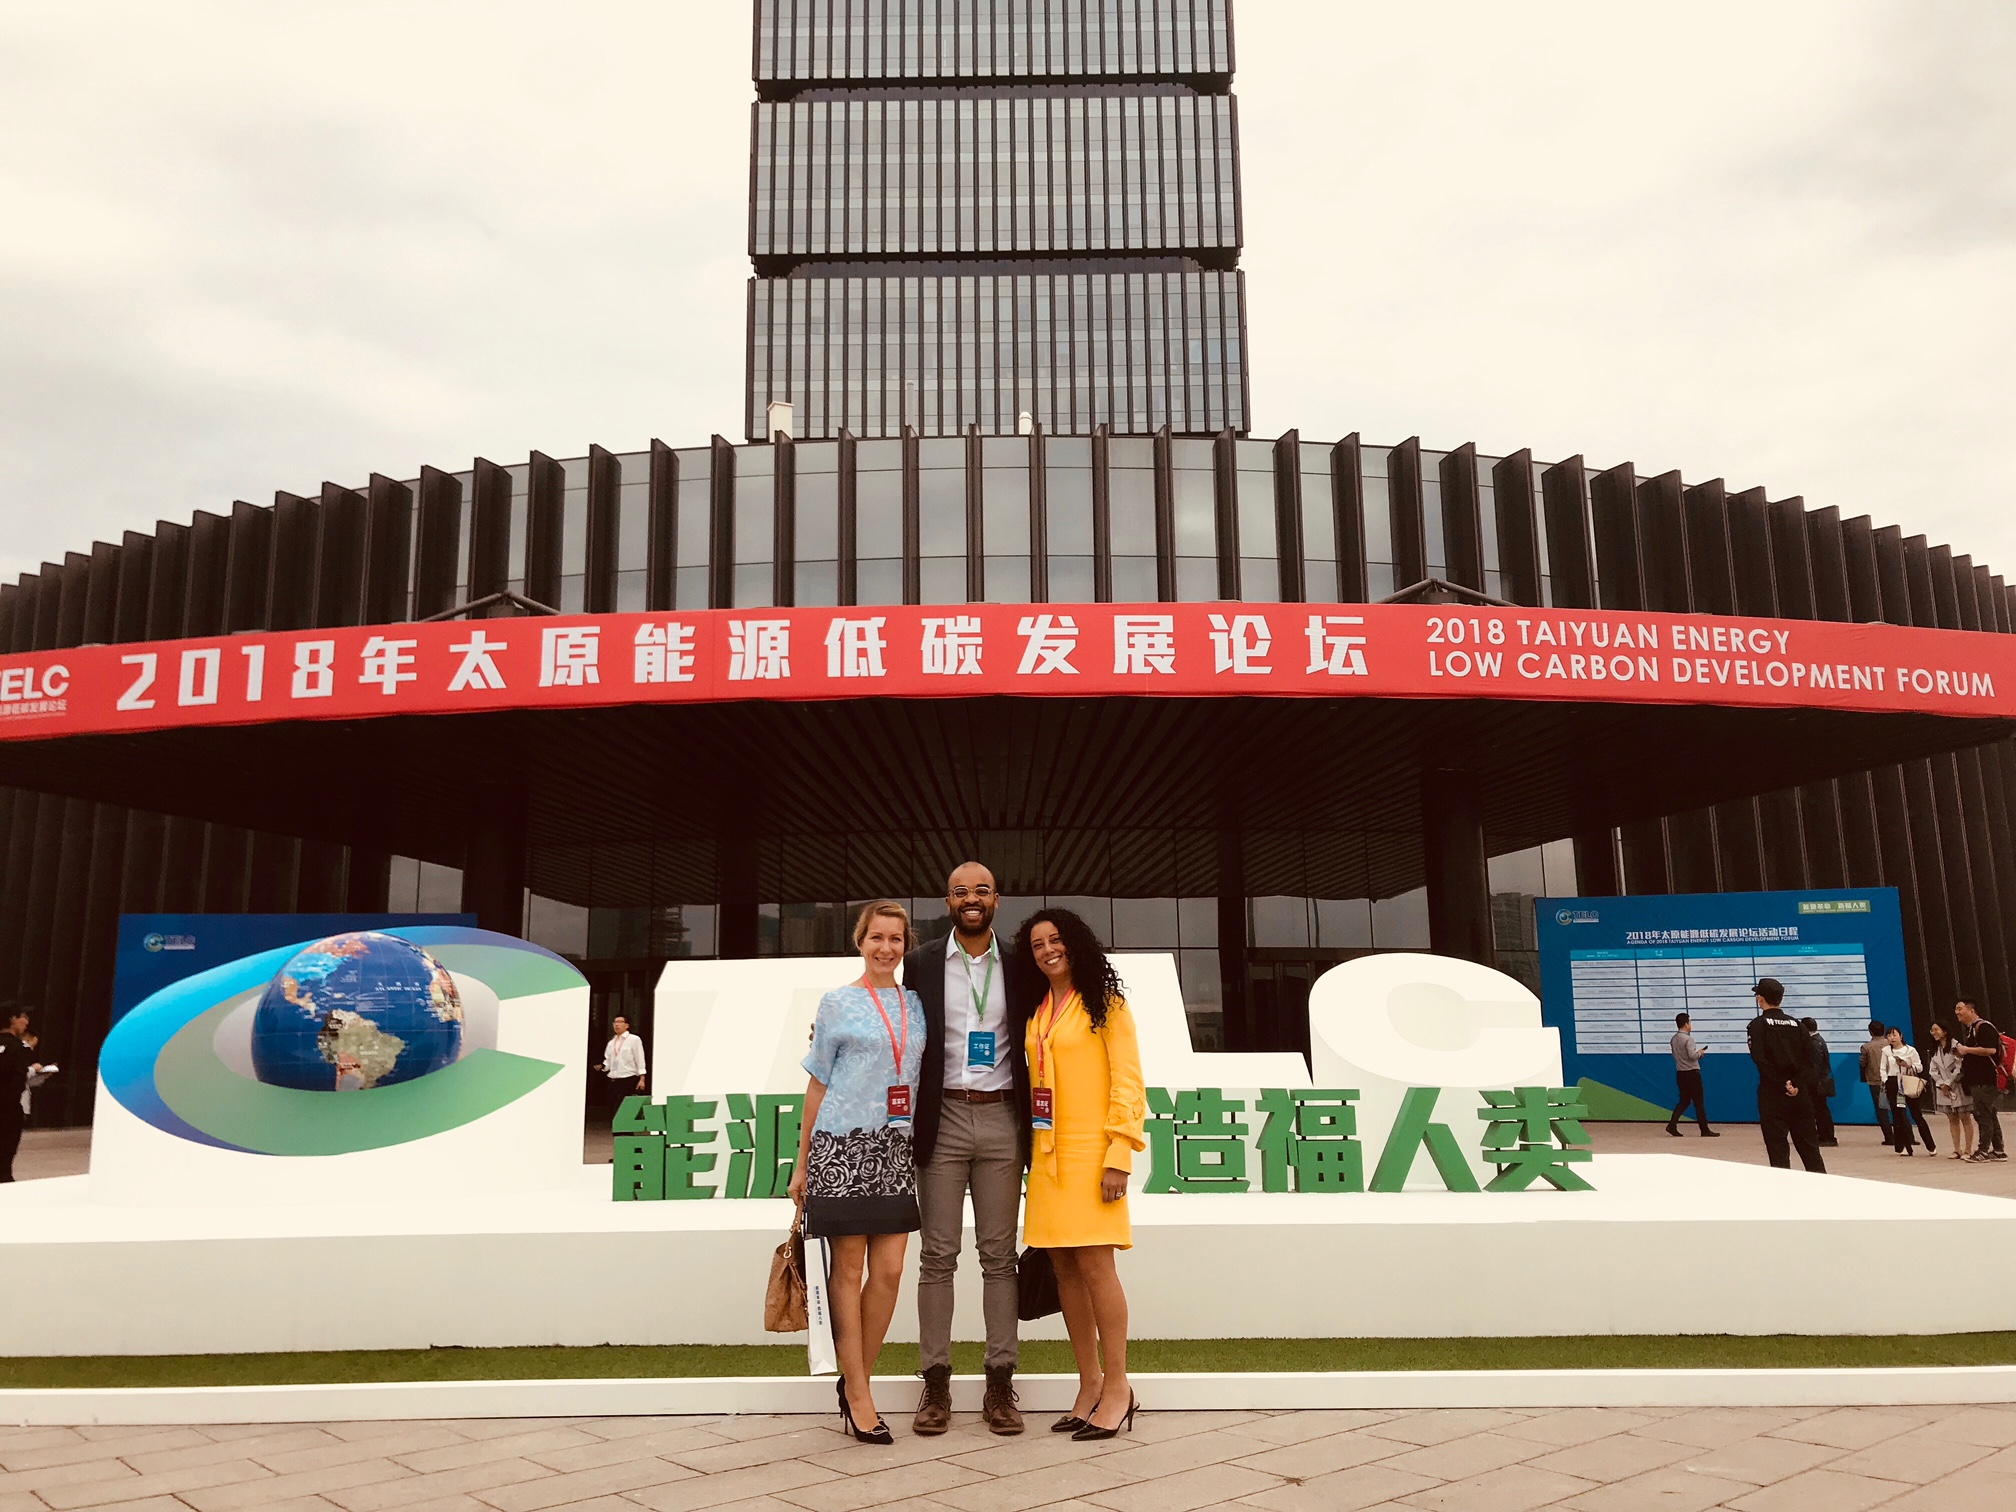 Three people pose in front of Chinese convention center